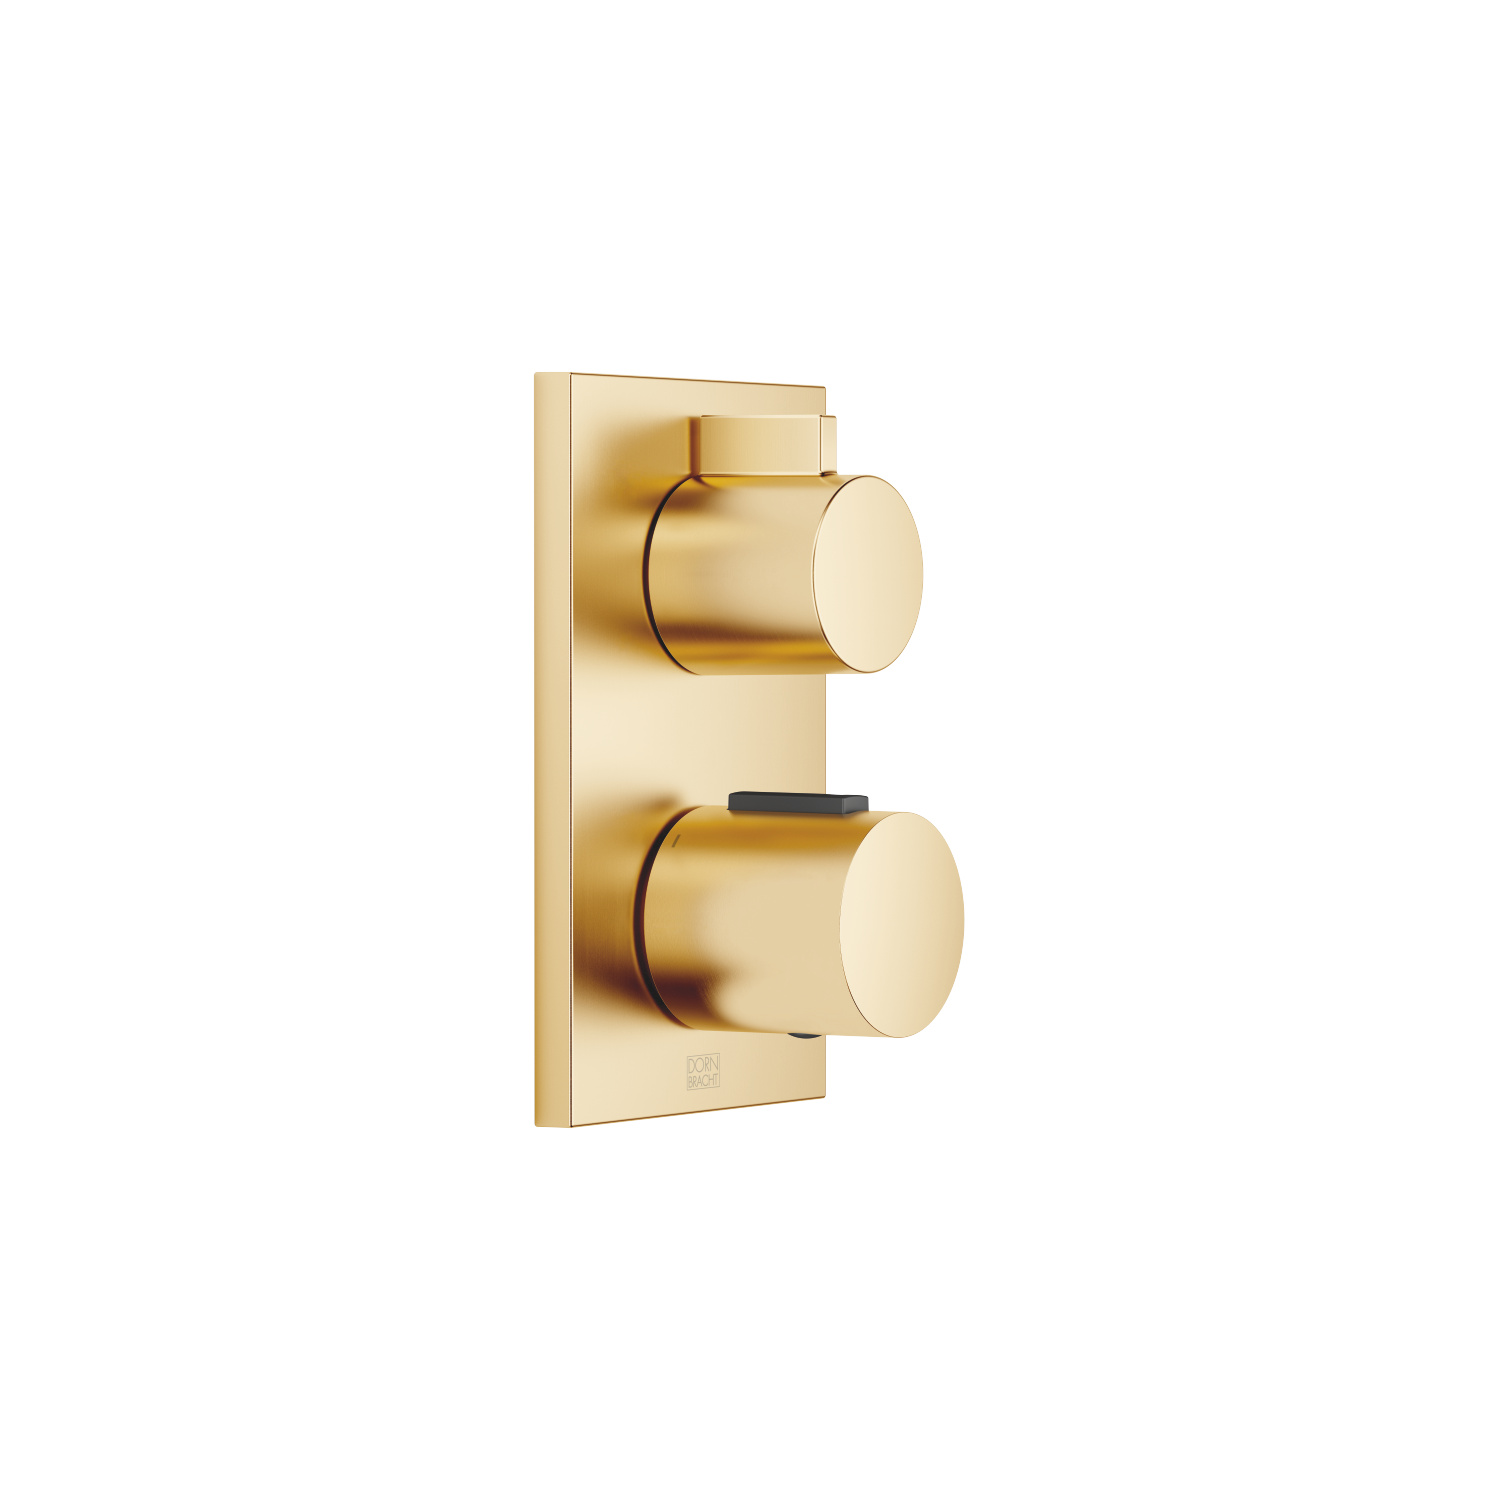 Concealed thermostat with one function volume control - brushed Durabrass